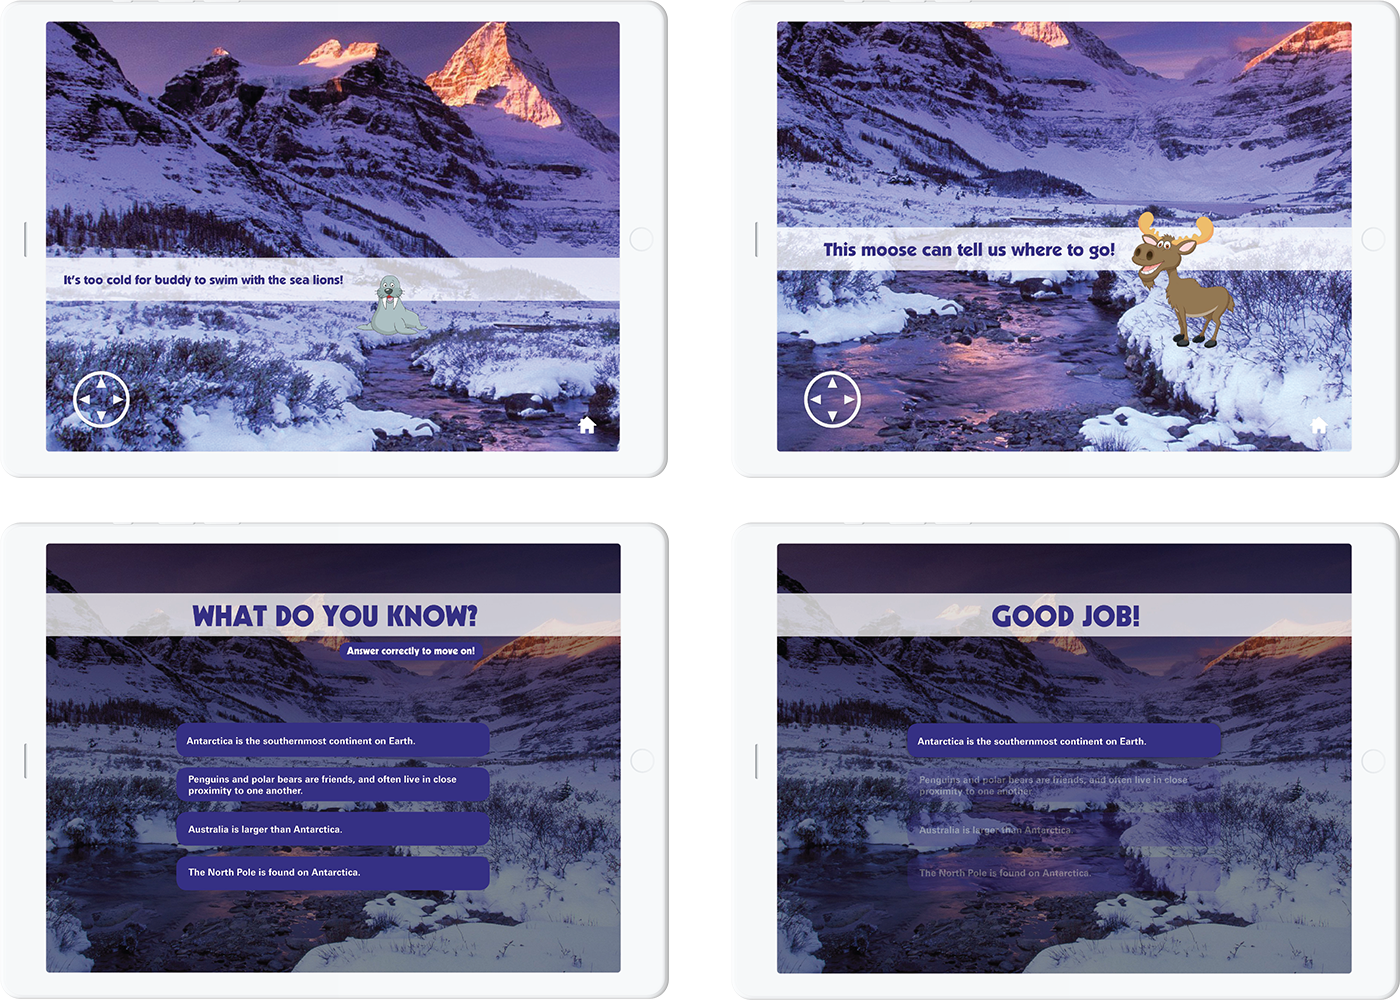 Buddy_Bison_ipad_mockup_4.png